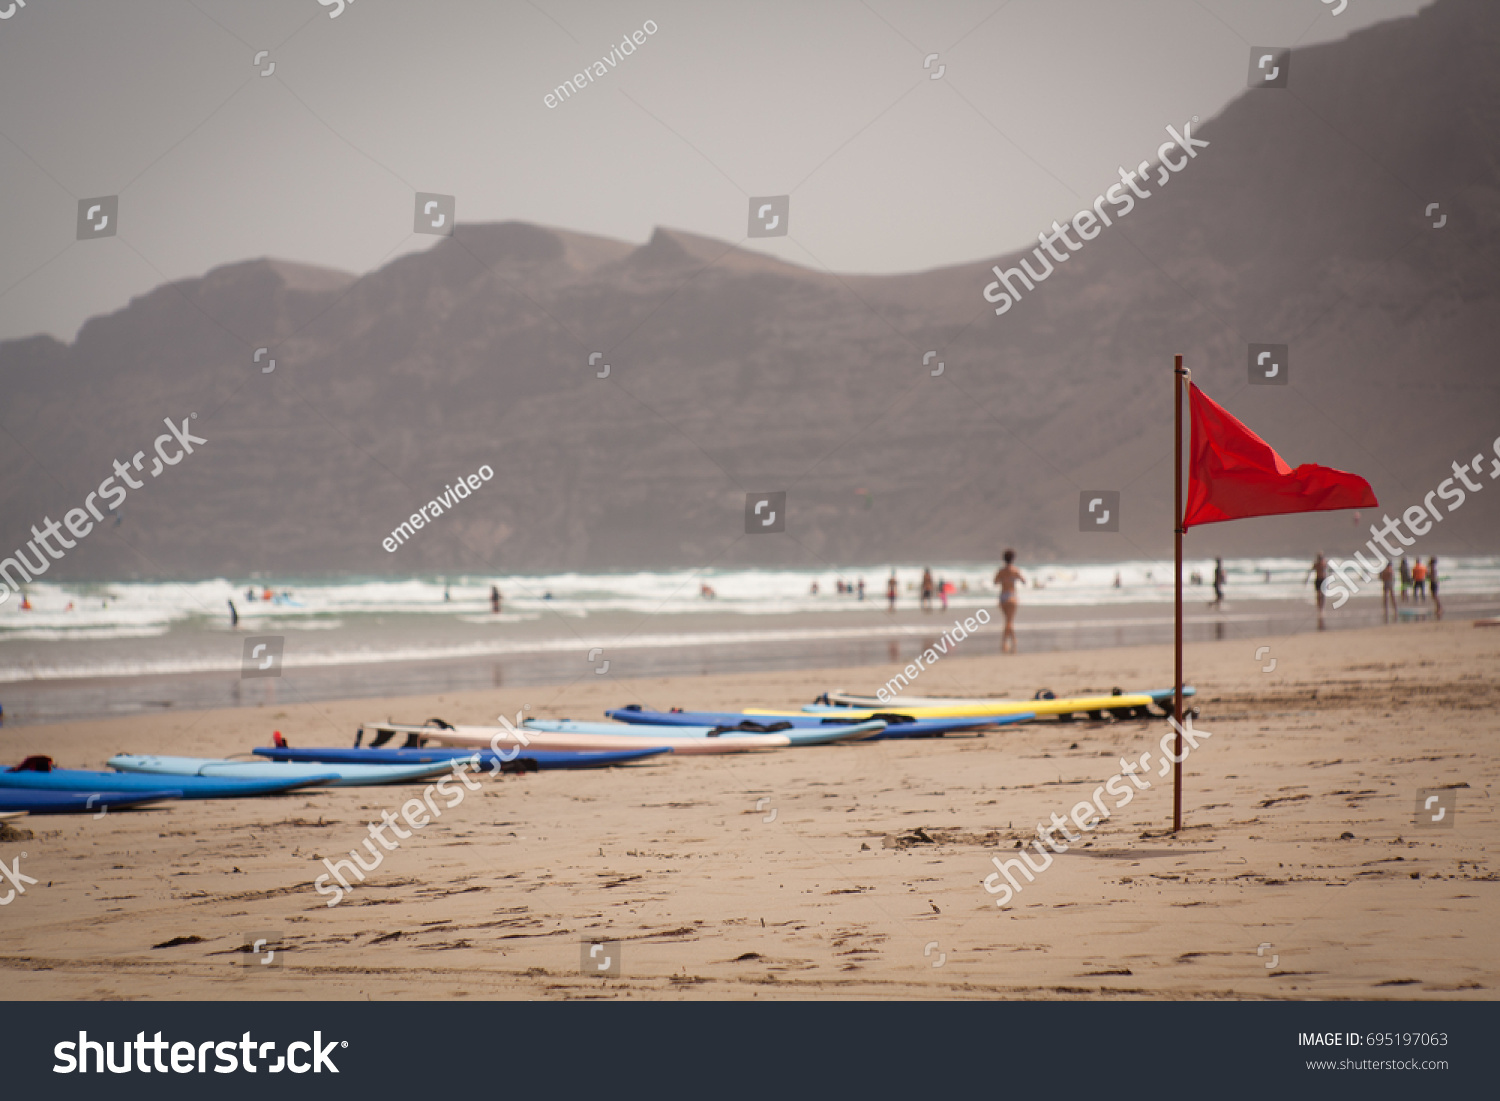 Flapon Red Flag Flap On Beach Surfboards Stock Photo Edit Now 695197063